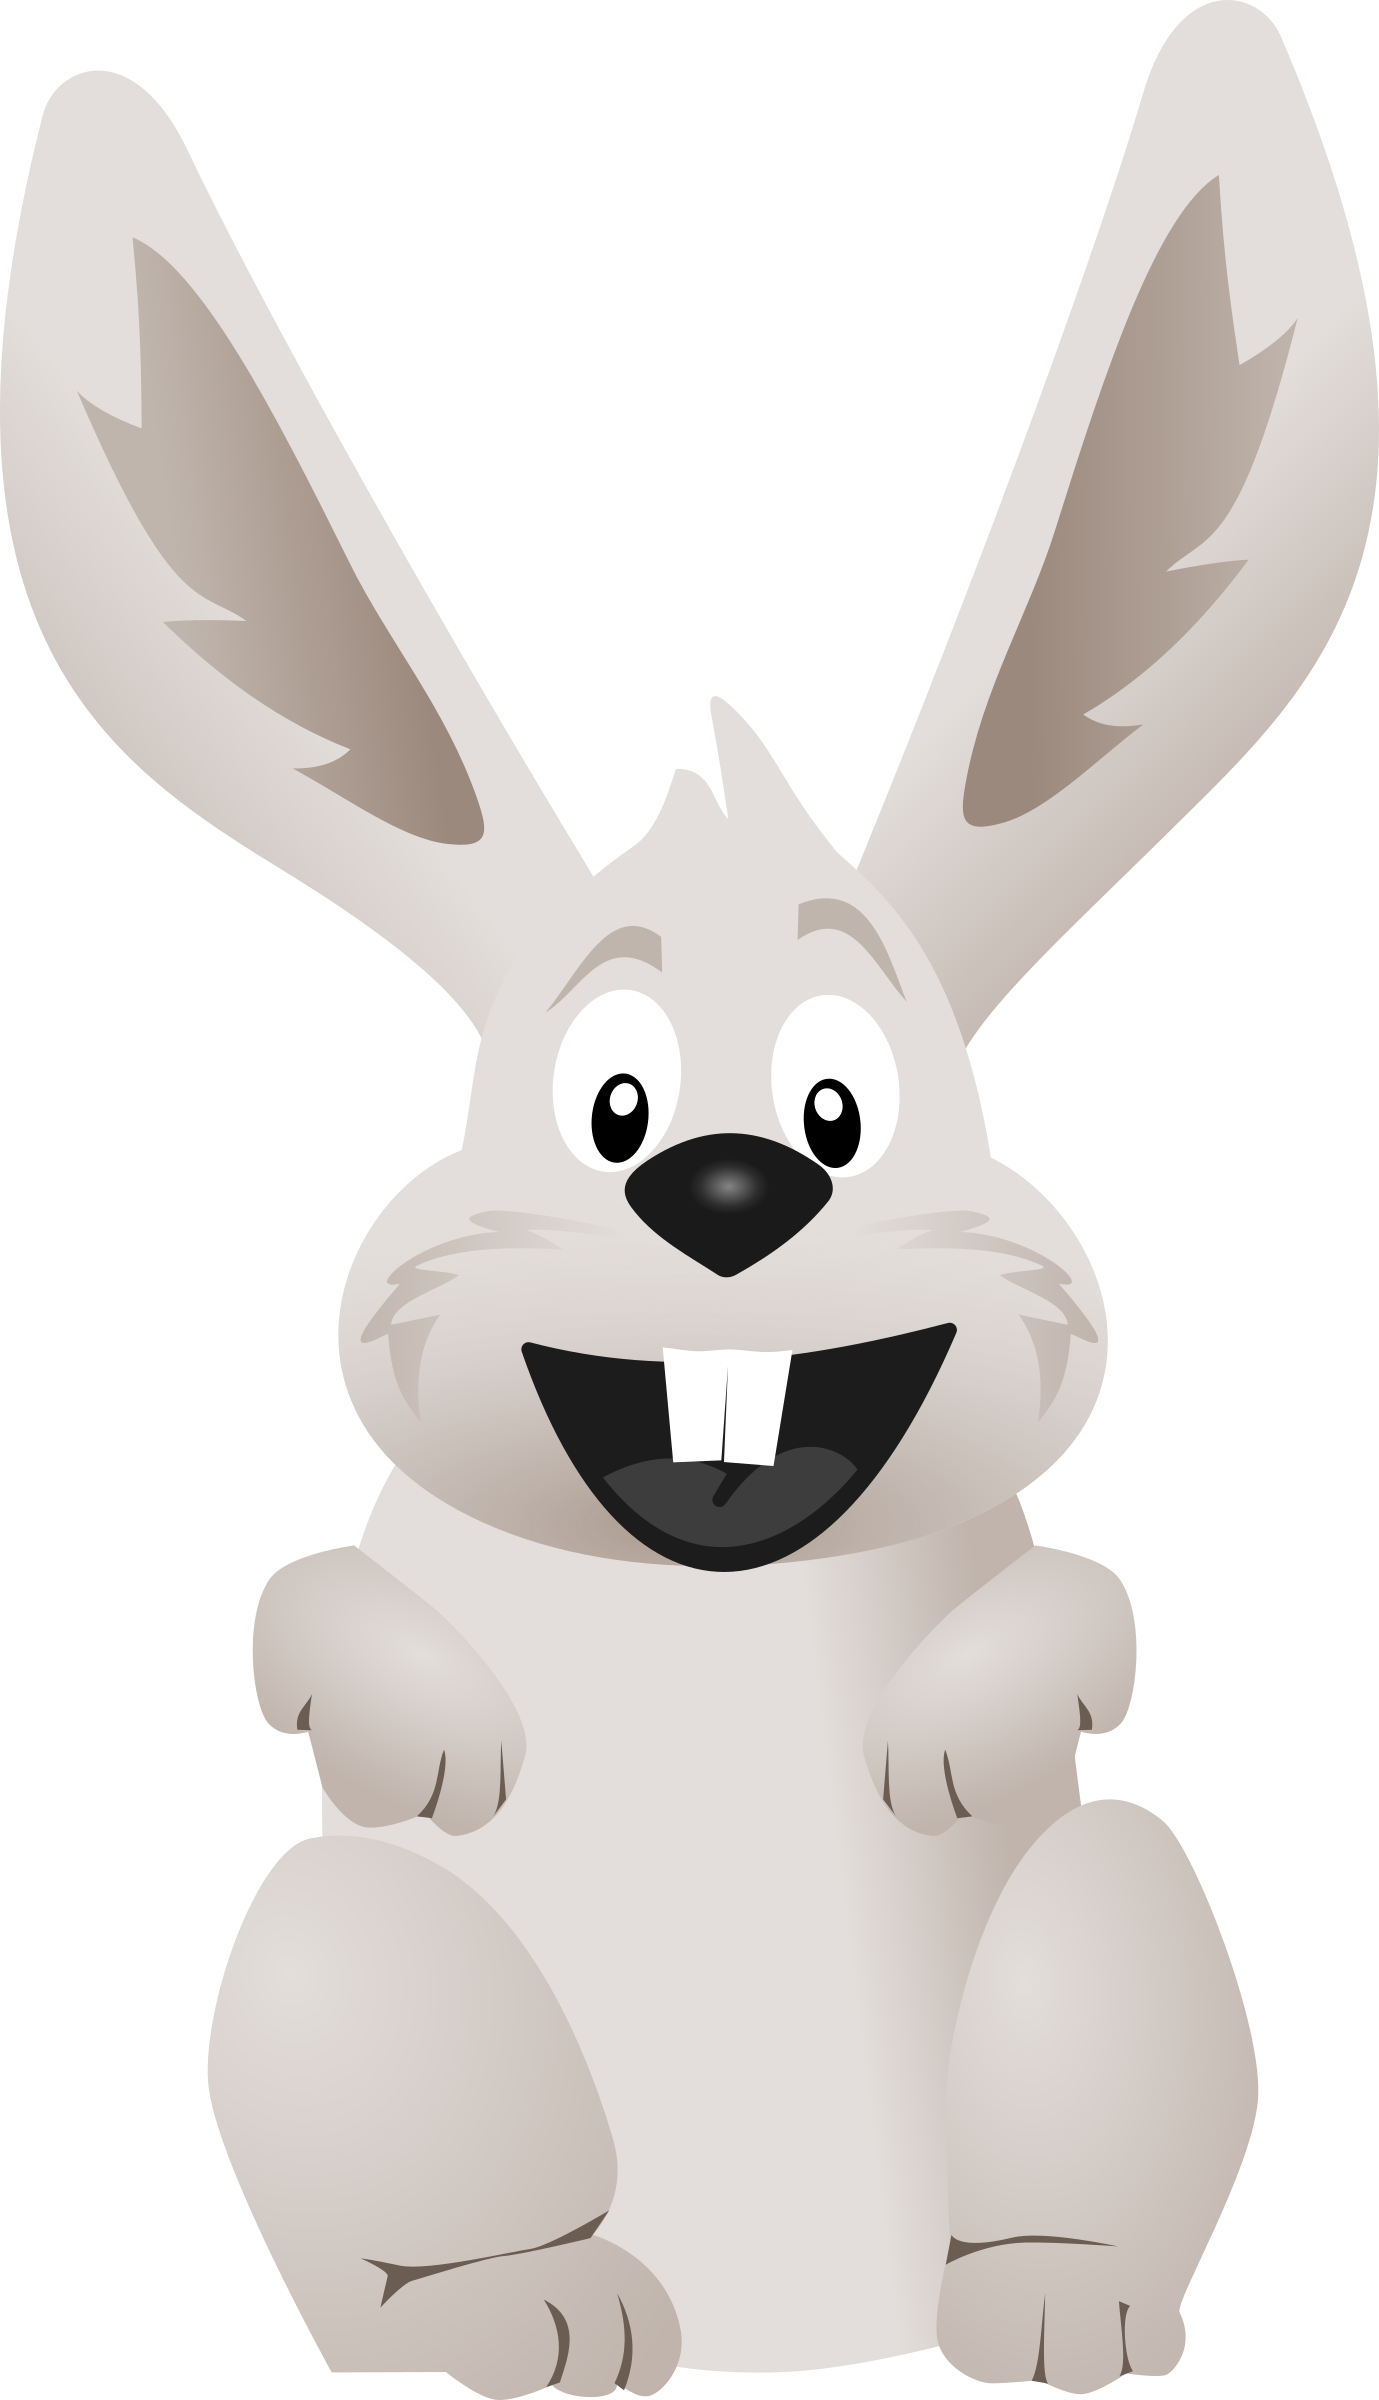 Cool clipart bunny. Funny rabbit icons png